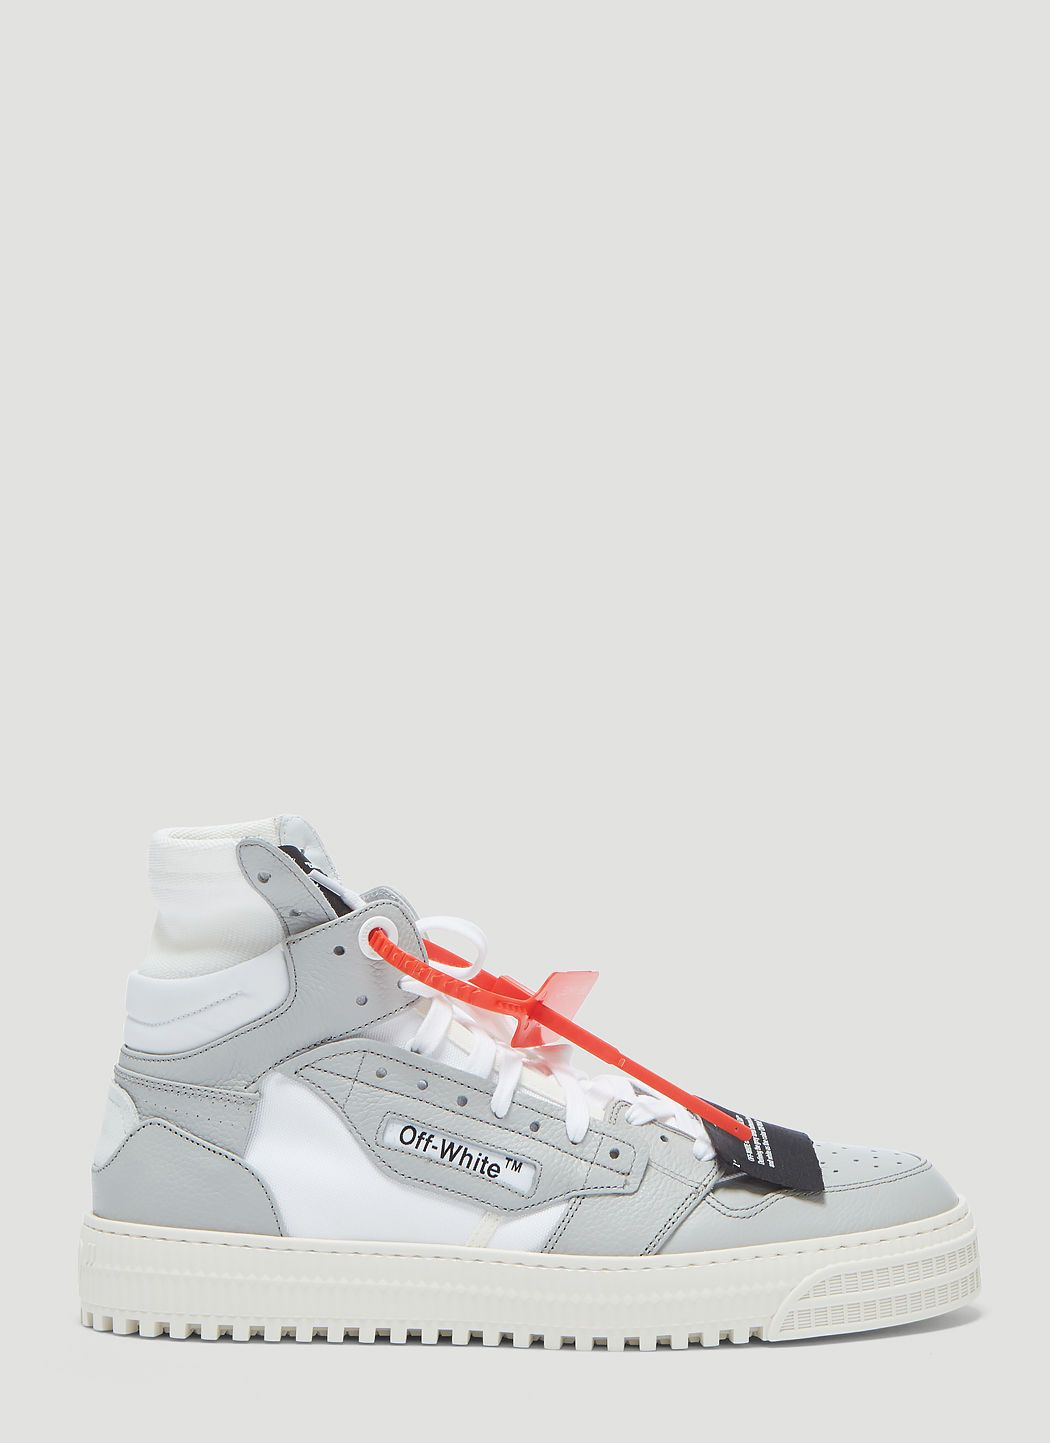 Top Sneakers in Grey. #off-white #shoes